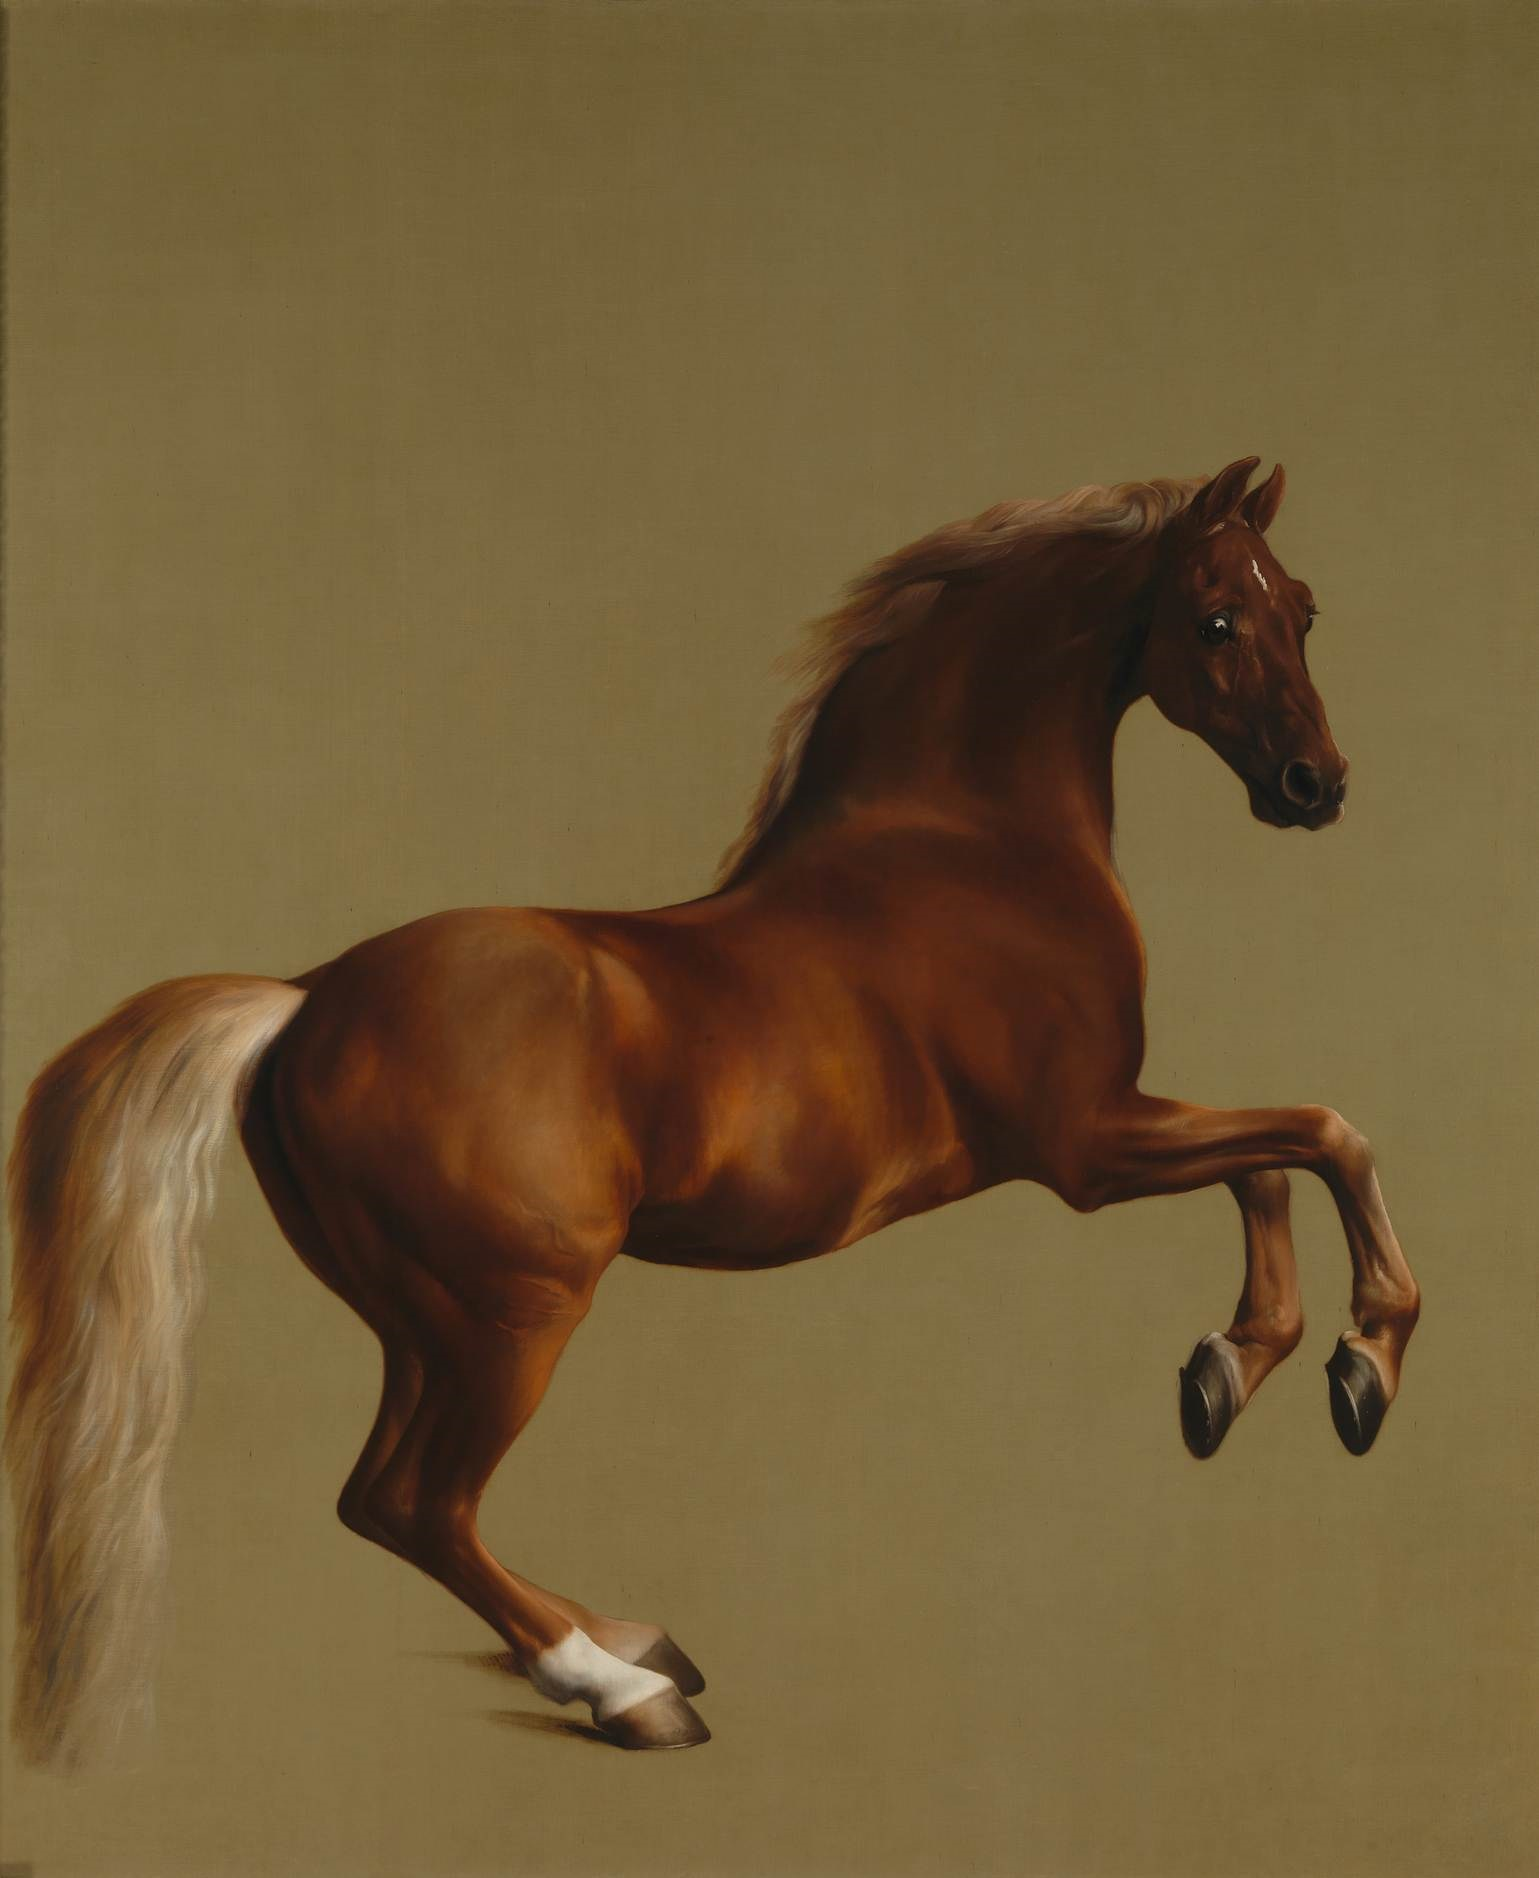 Stubbs and the Anatomy of the Horse | mamo.org.uk